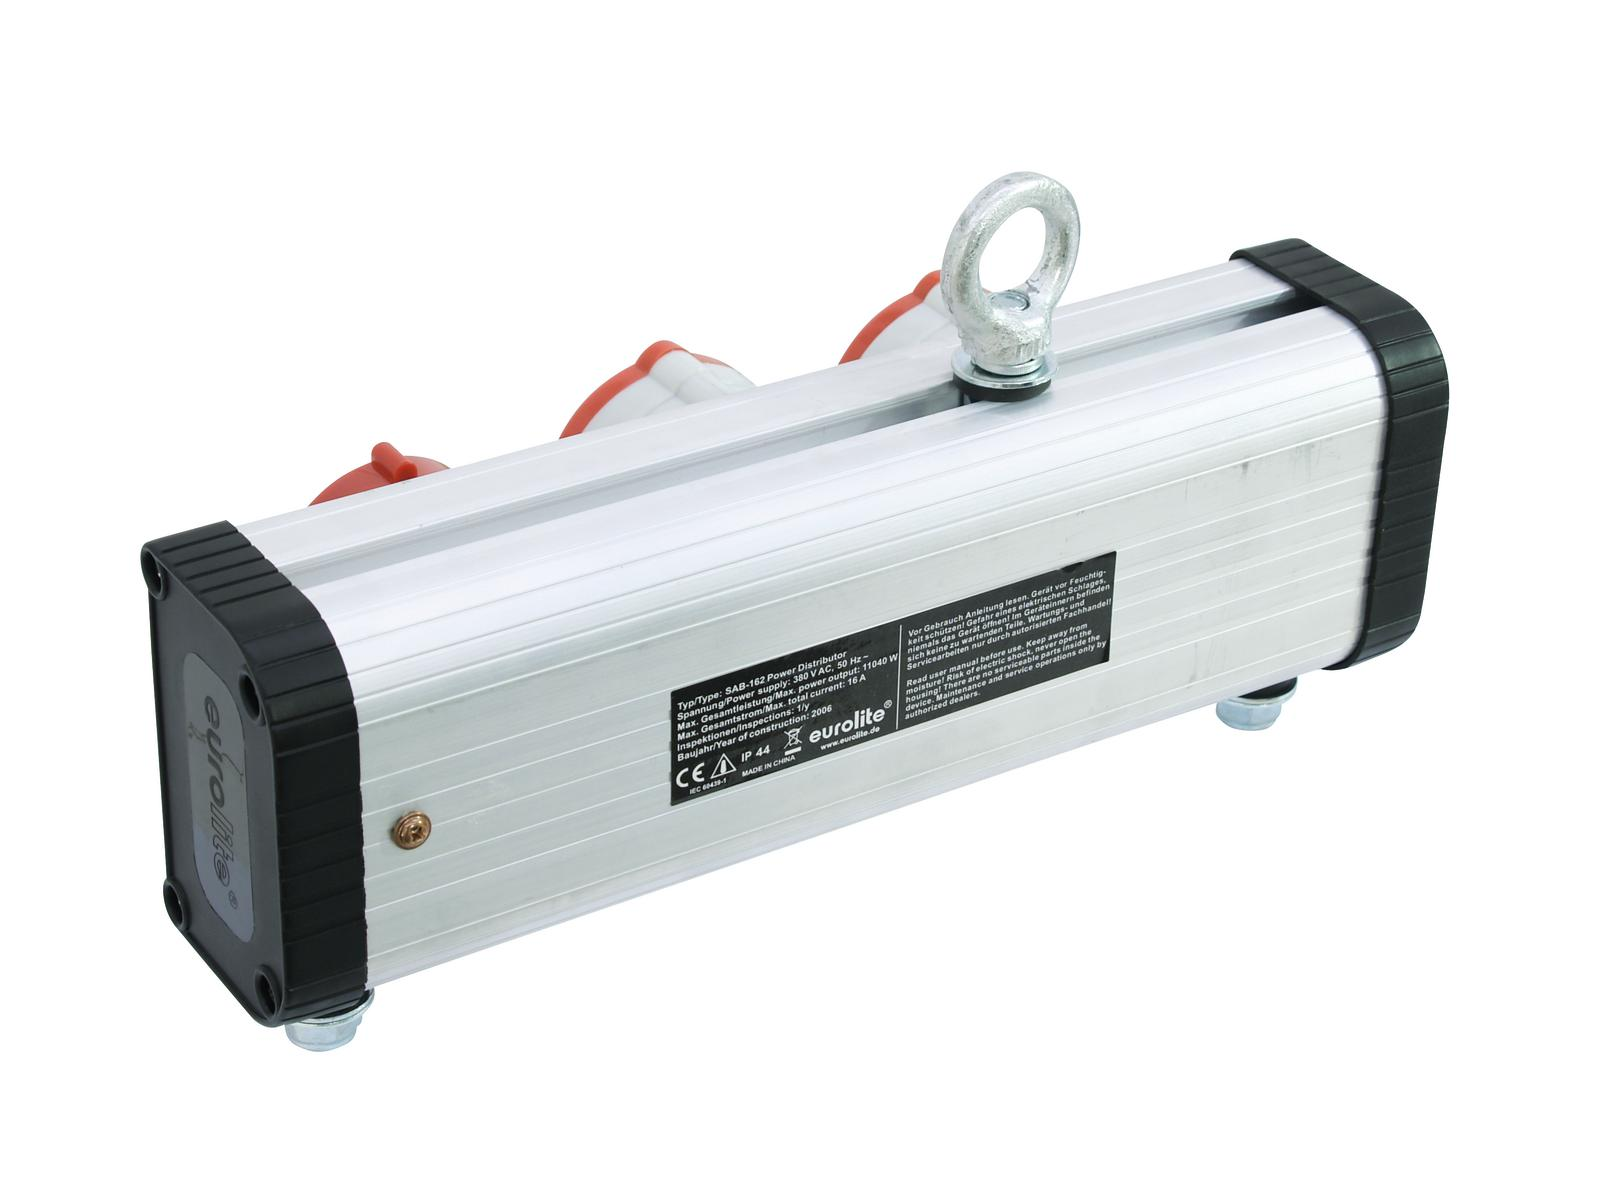 The power adapter is recessed CEE 32 A for truss American EUROLITE